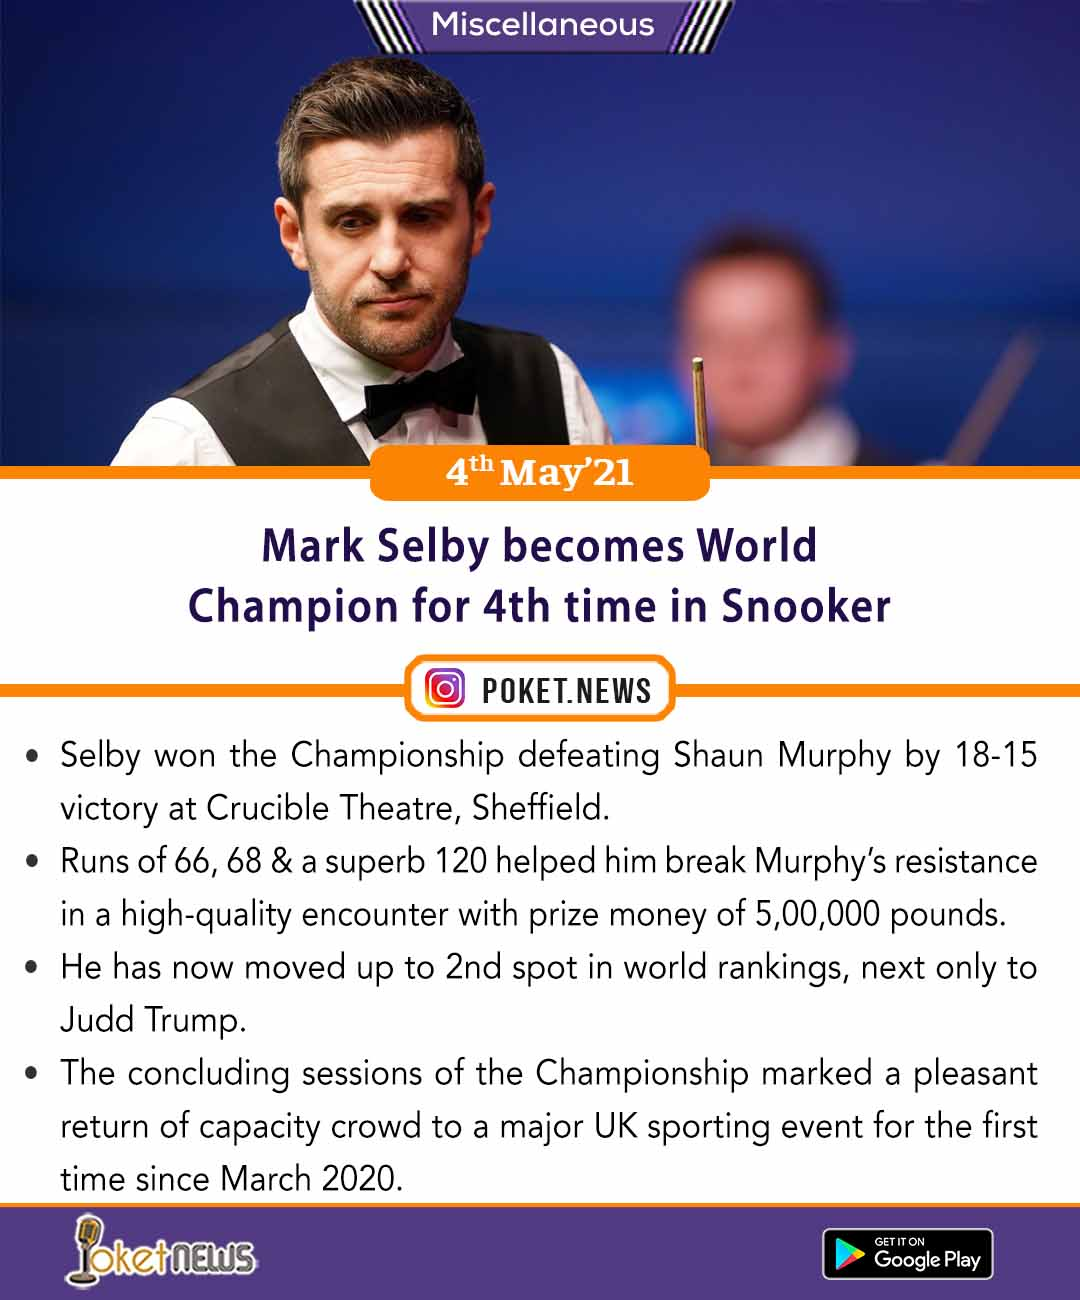 Mark Selby becomes World Champion for 4th time in Snooker